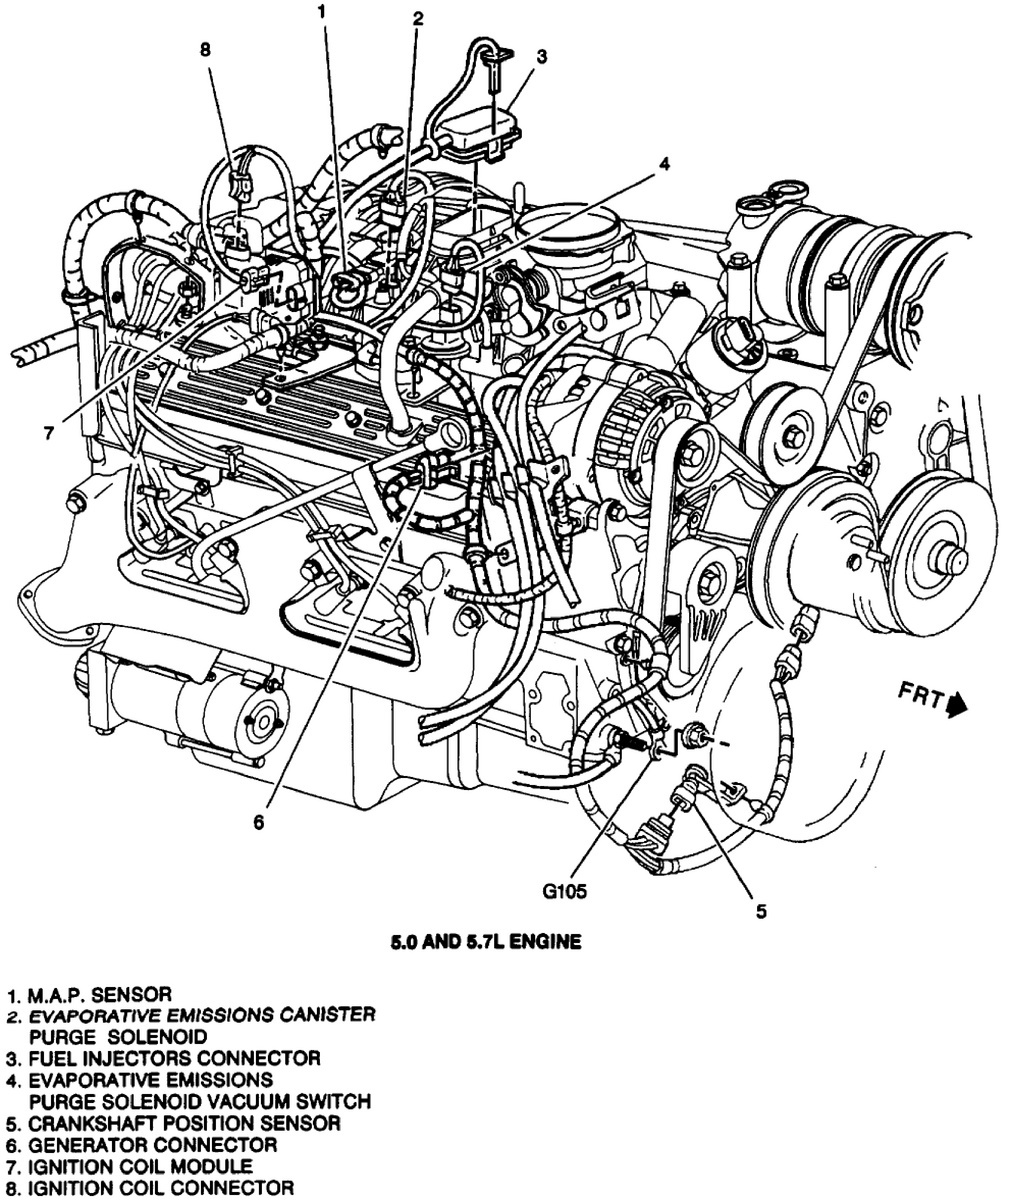 pic 6189694446580346251 1600x1200 chevrolet corsica questions where is crankshaft sensor on chevy 1994 chevy corsica radio wiring diagram at cos-gaming.co